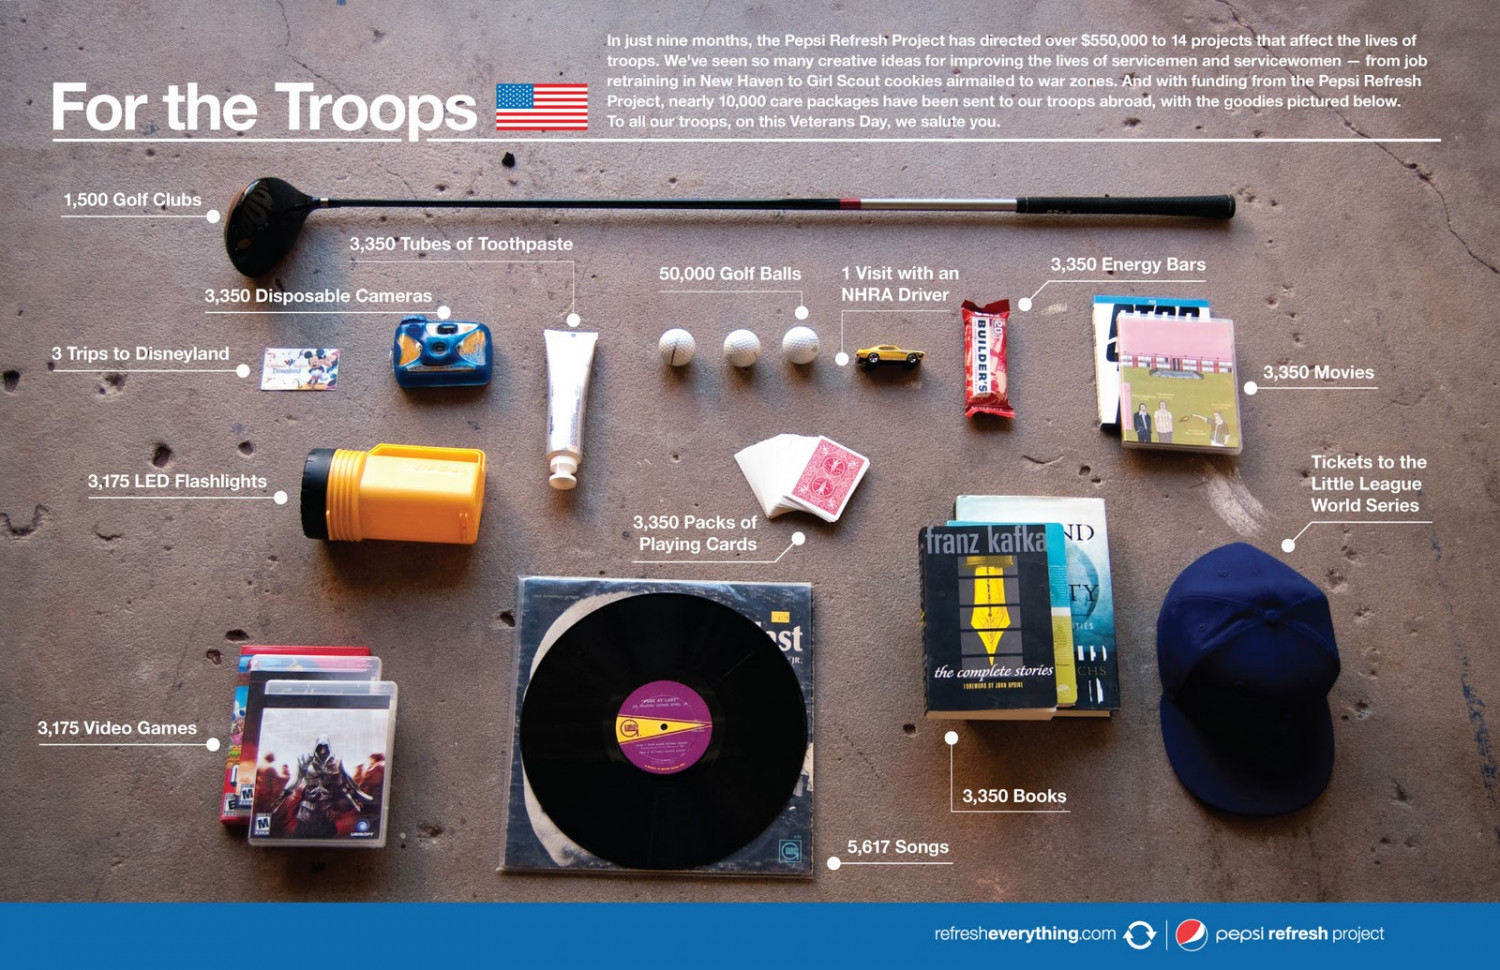 For the Troops Infographic